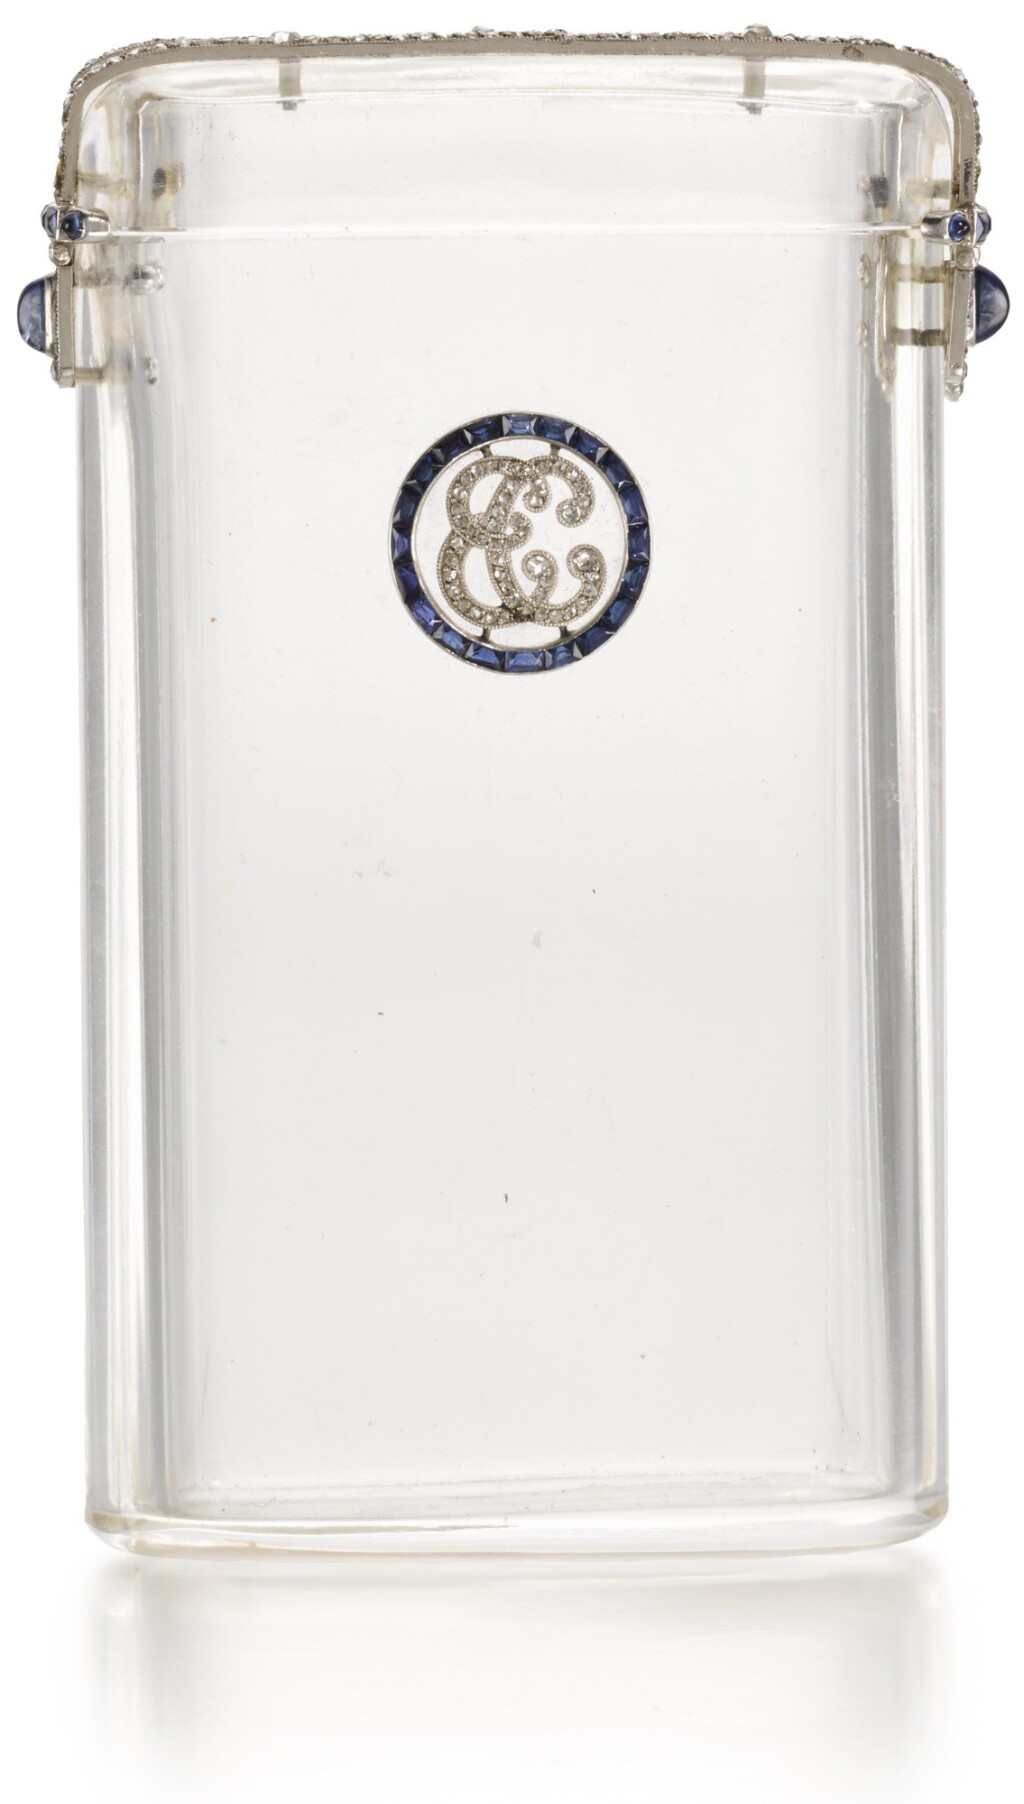 A JEWELLED ROCK-CRYSTAL CIGARETTE CASE, FRENCH, PROBABLY 1925,